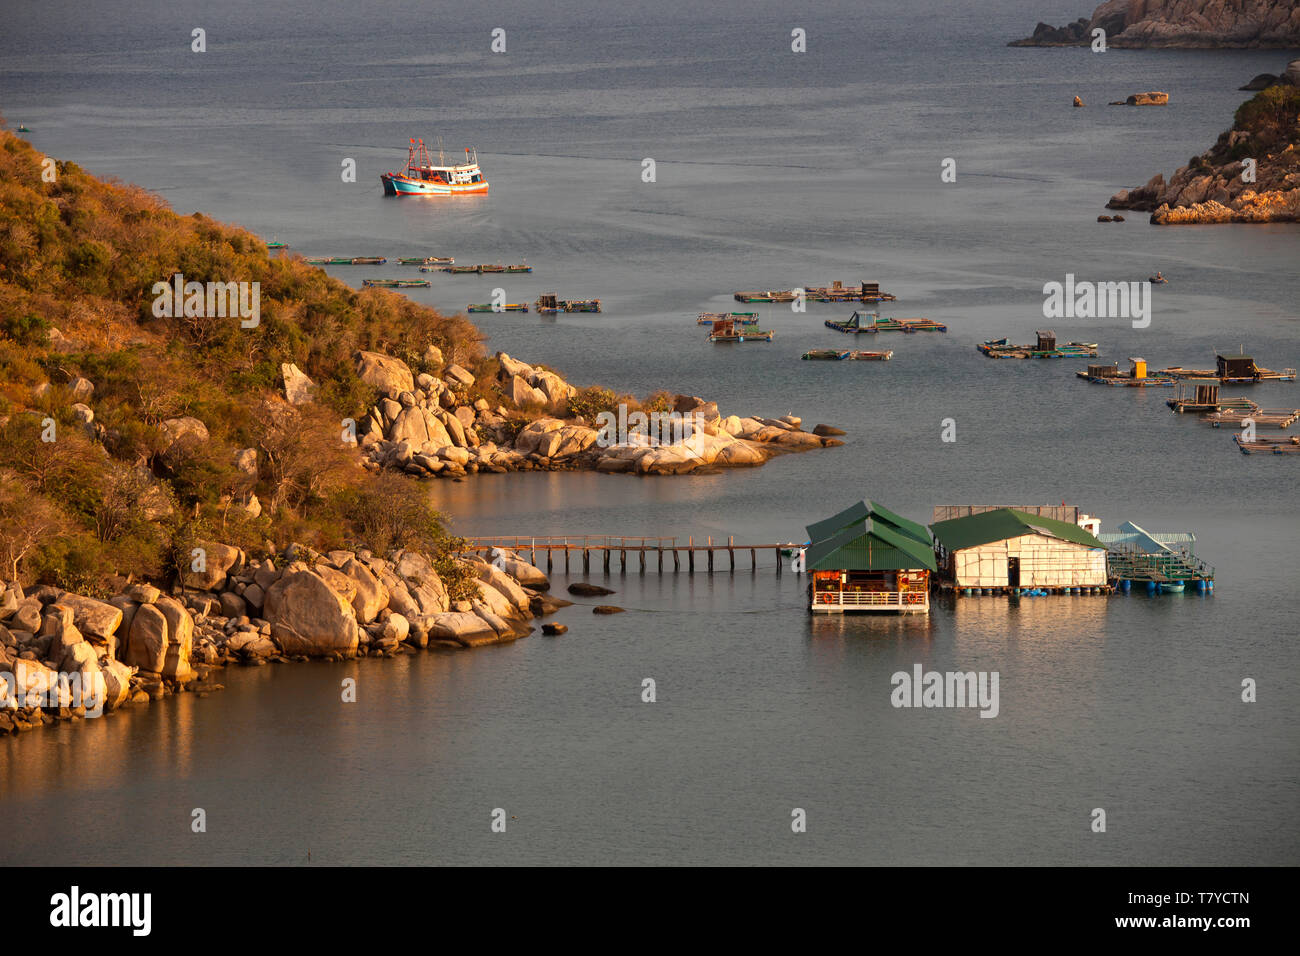 Fishing boats in the bay of Vinh Hy, South China Sea,province Ninh Thuan, Vietnam - Stock Image